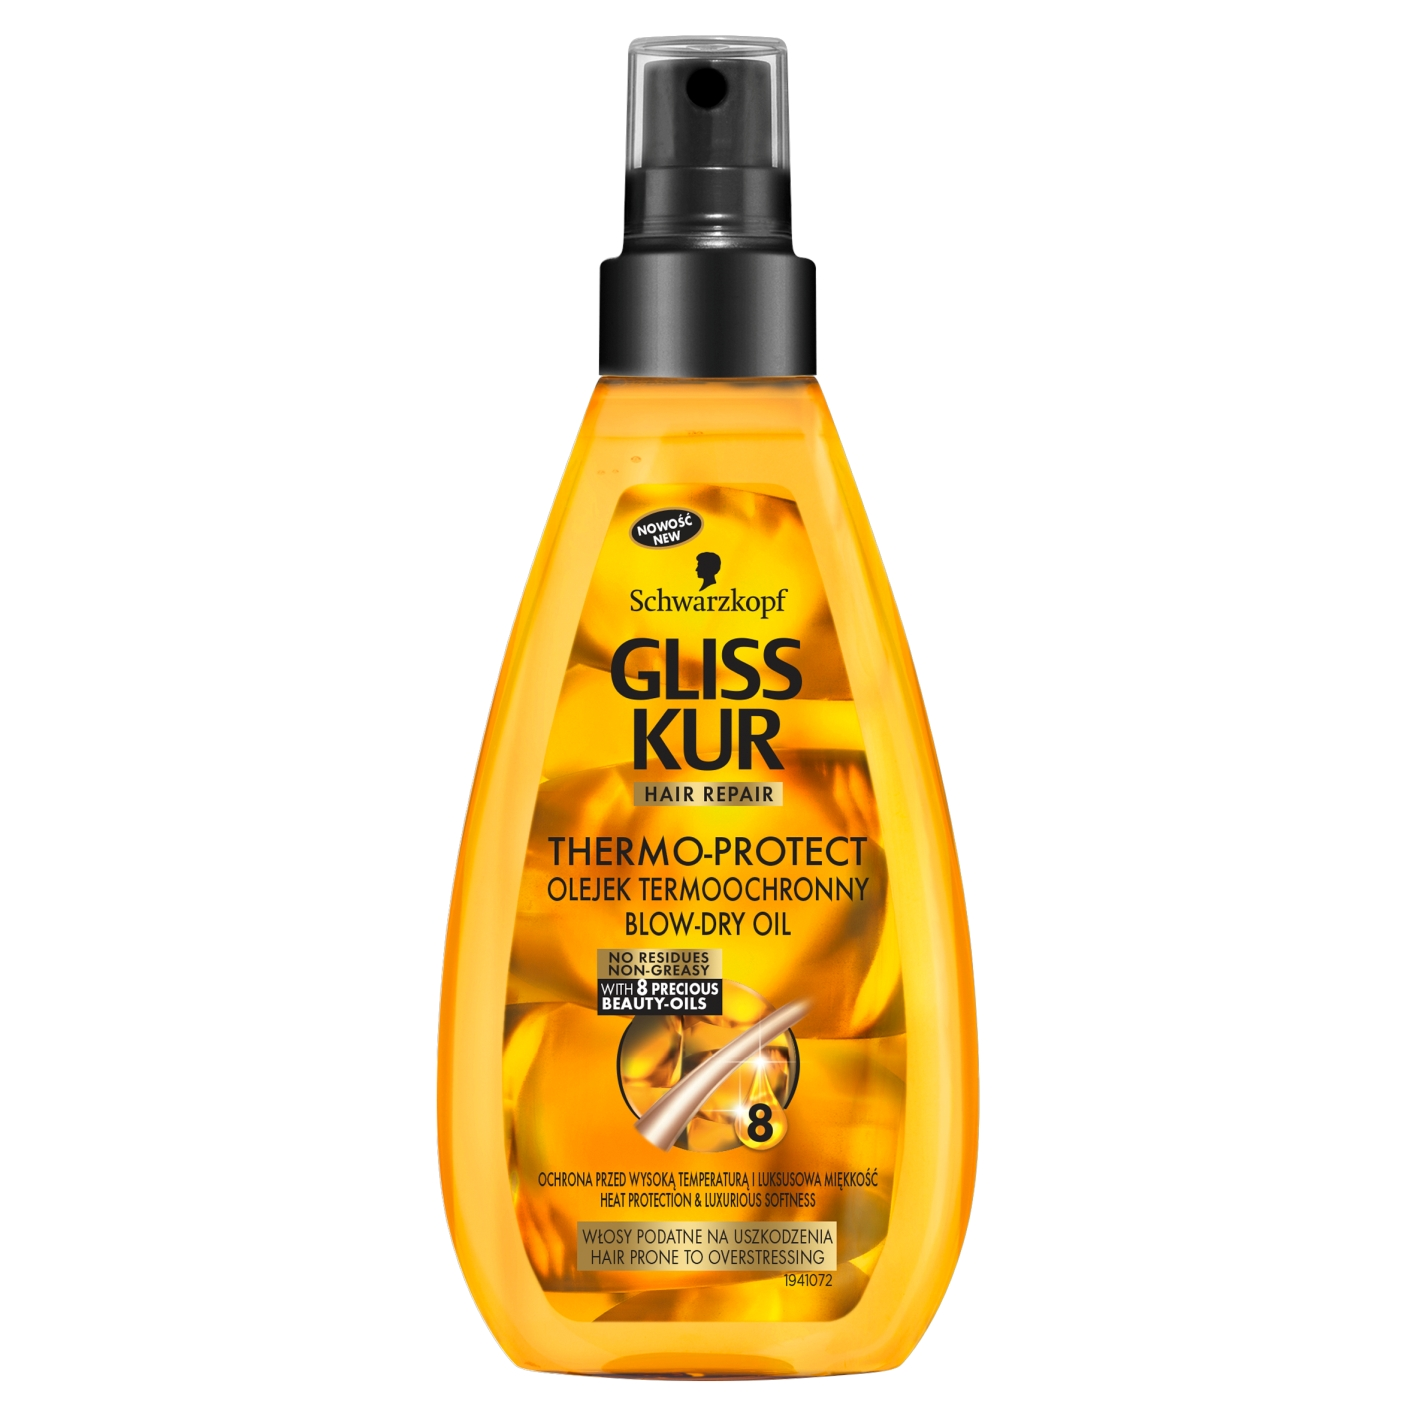 Schwarzkopf Gliss Kur Thermo Protect Blow Dry Oil